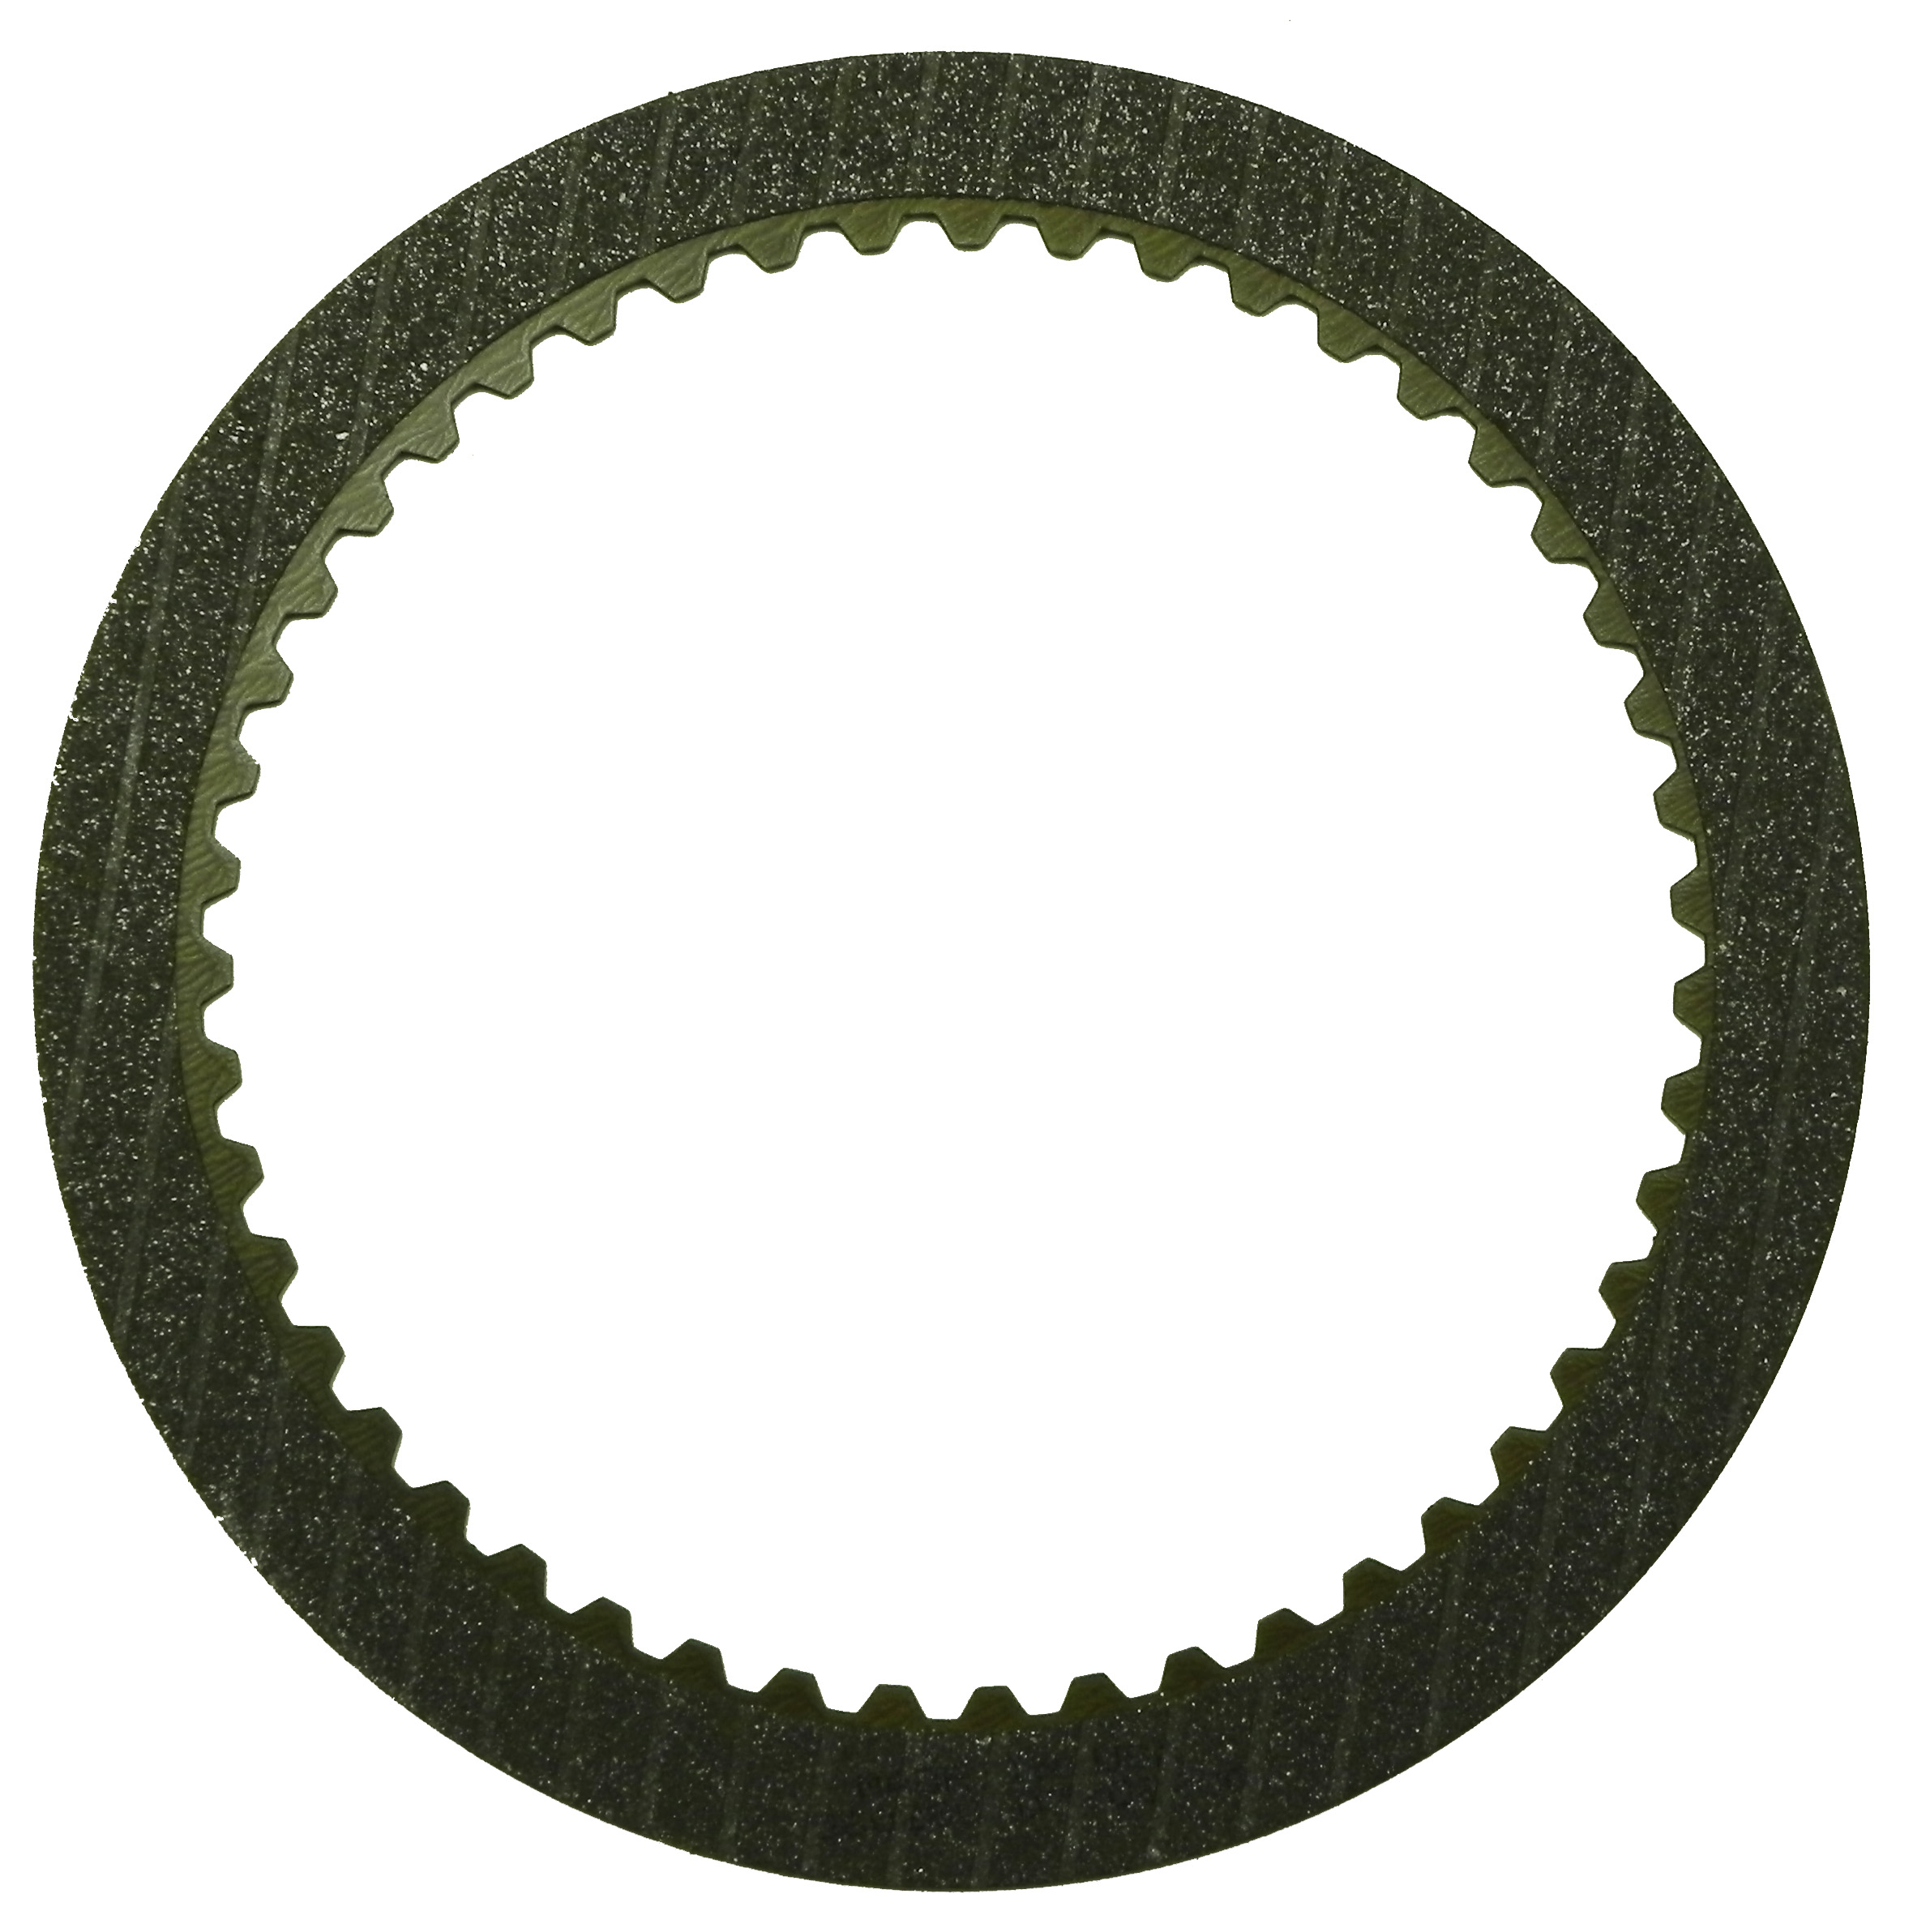 R560280 | 1978-1981 Friction Clutch Plate Graphitic Forward Graphitic